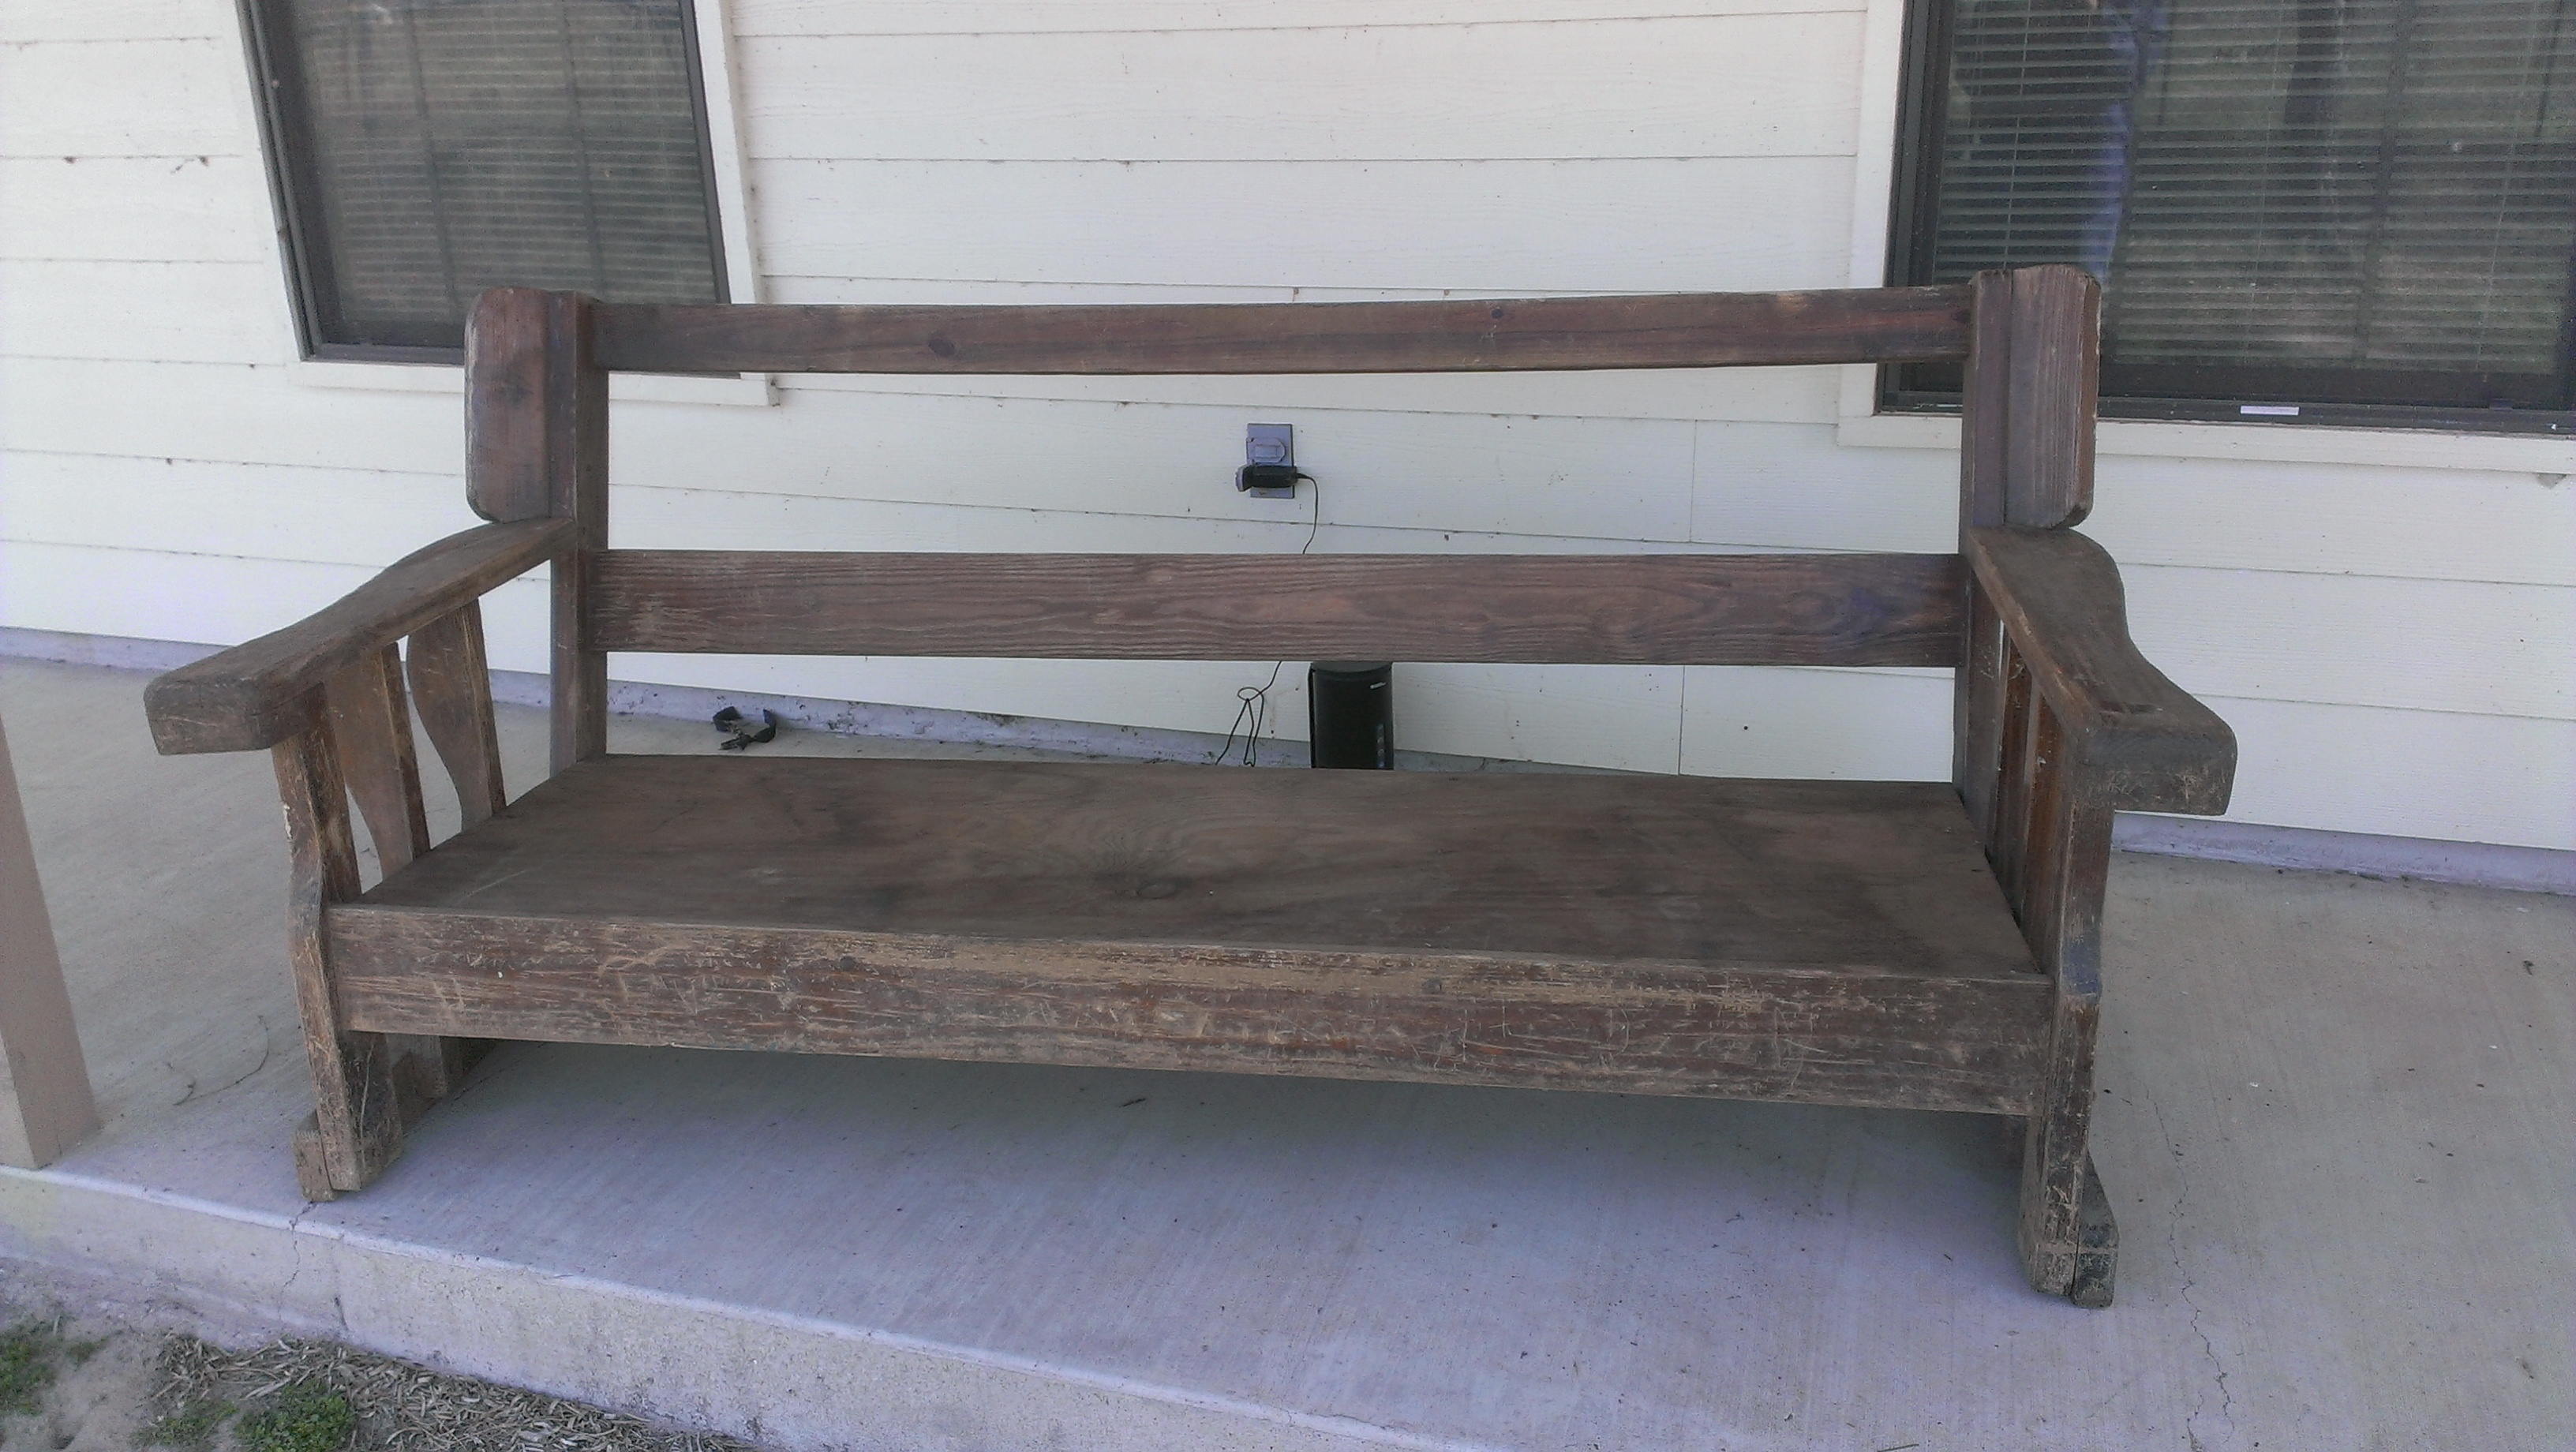 this is the bench after